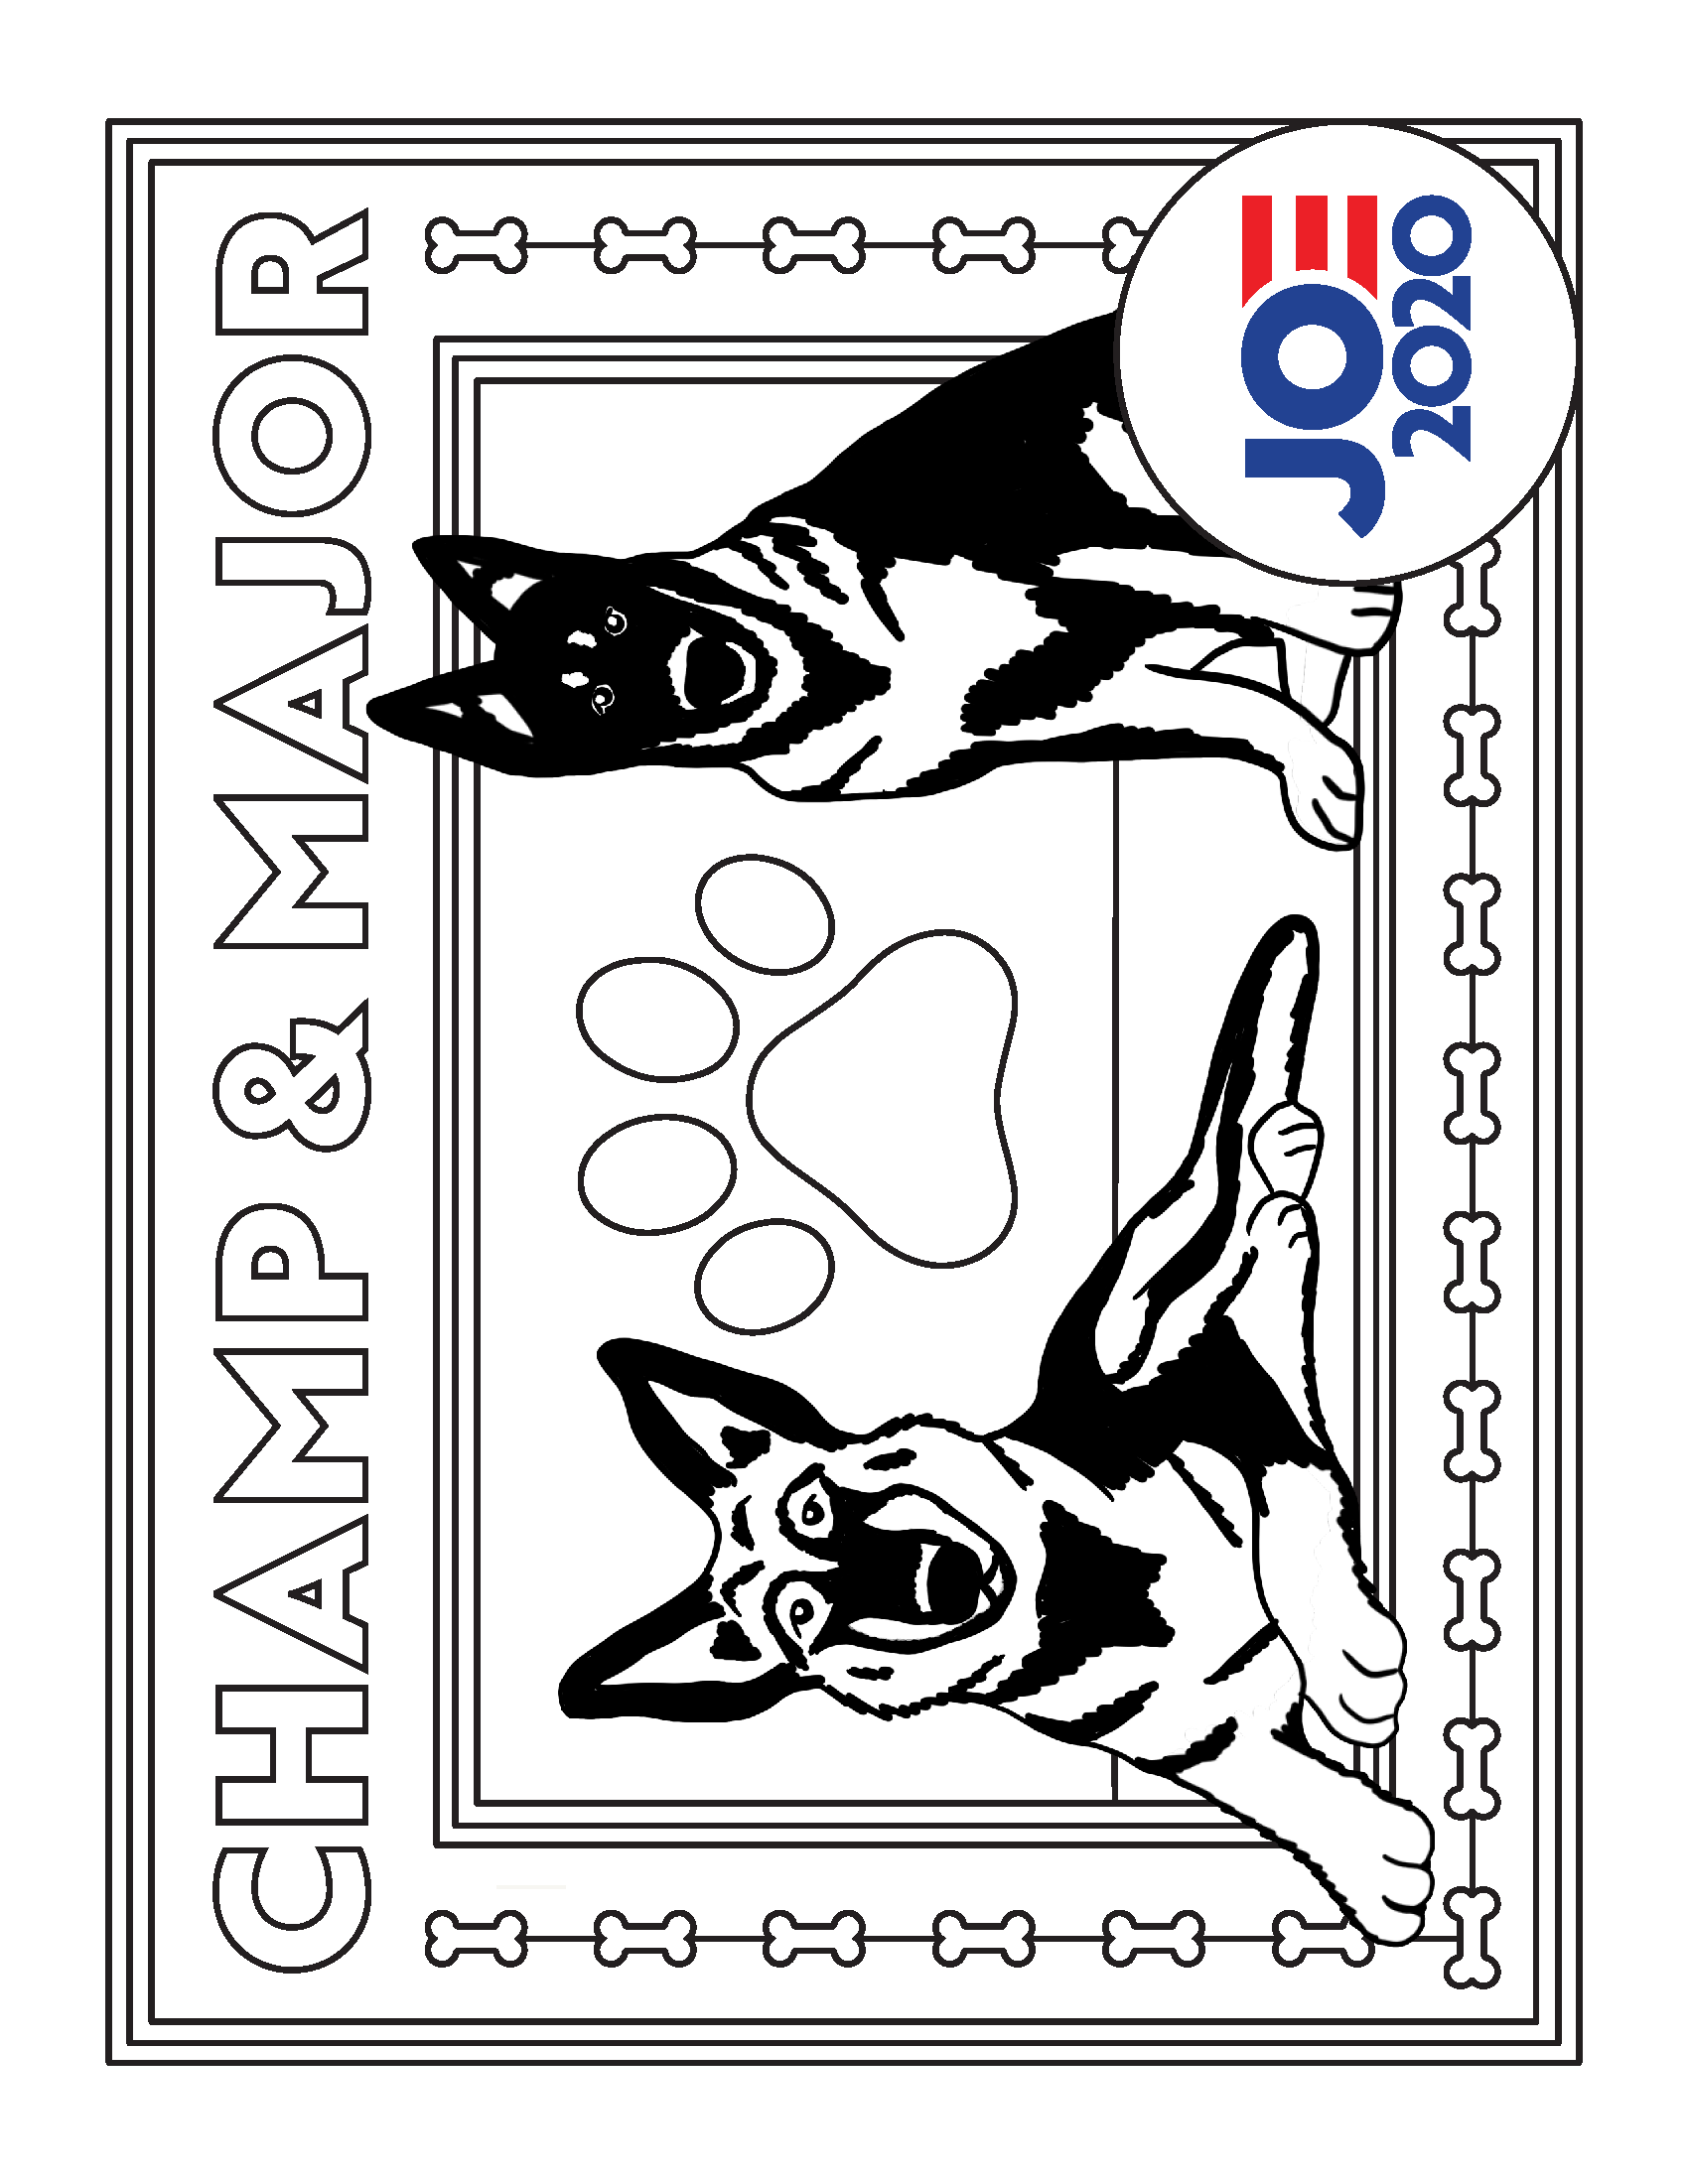 Printable Coloring Sheet For Kids With Dogs Coloring Sheets For Kids Printable Coloring Sheets Dogs And Kids